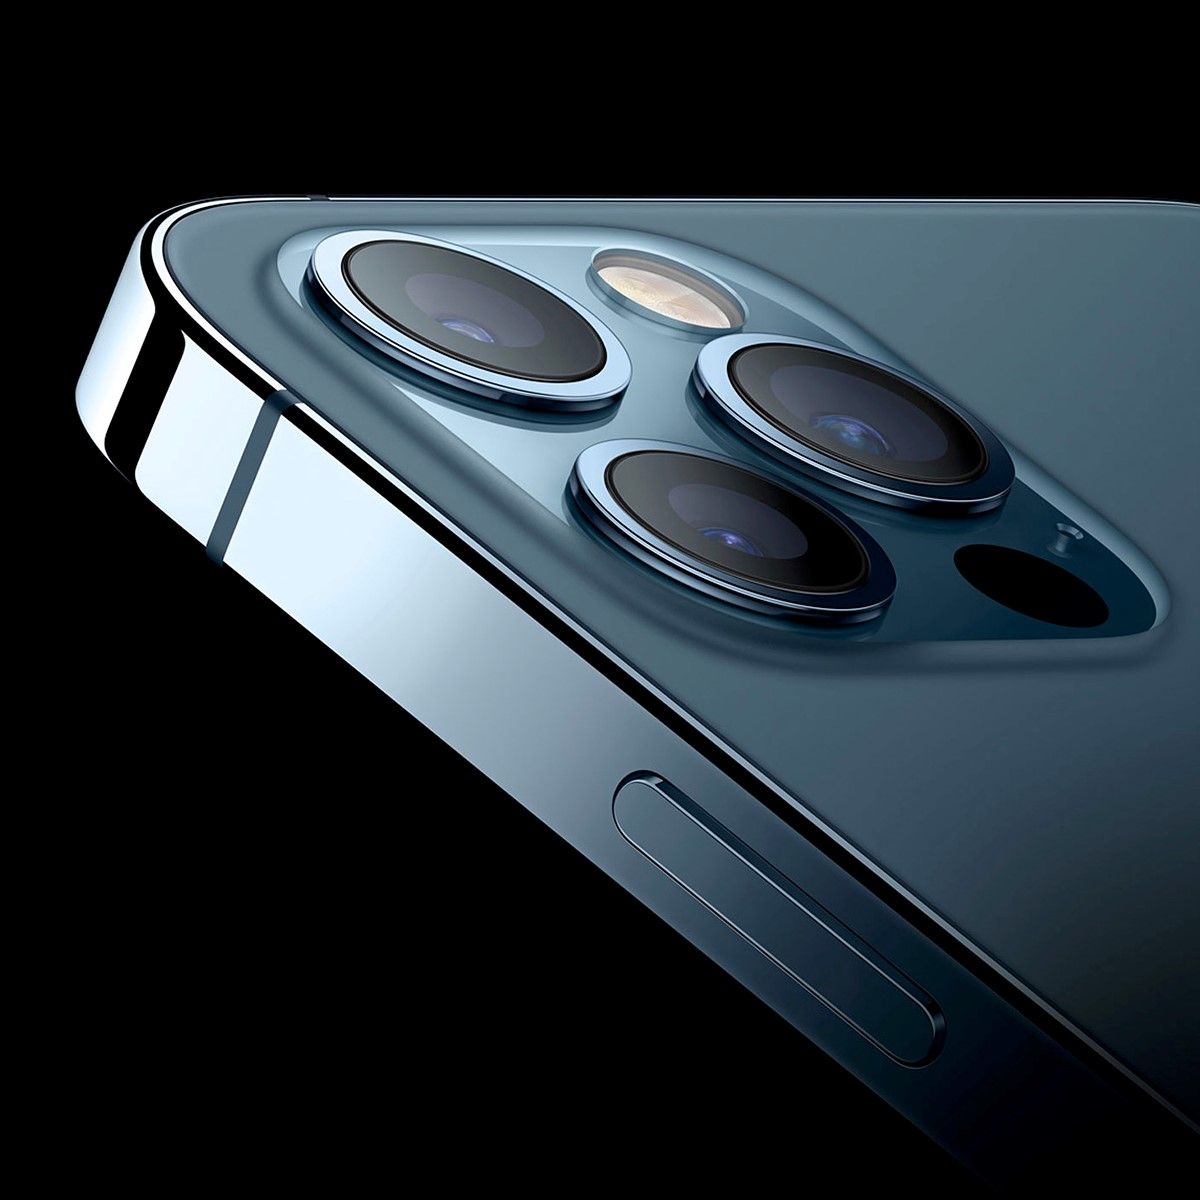 It's great, but the Max should be even better: iPhone 12 Pro camera review  round-up: Digital Photography Review